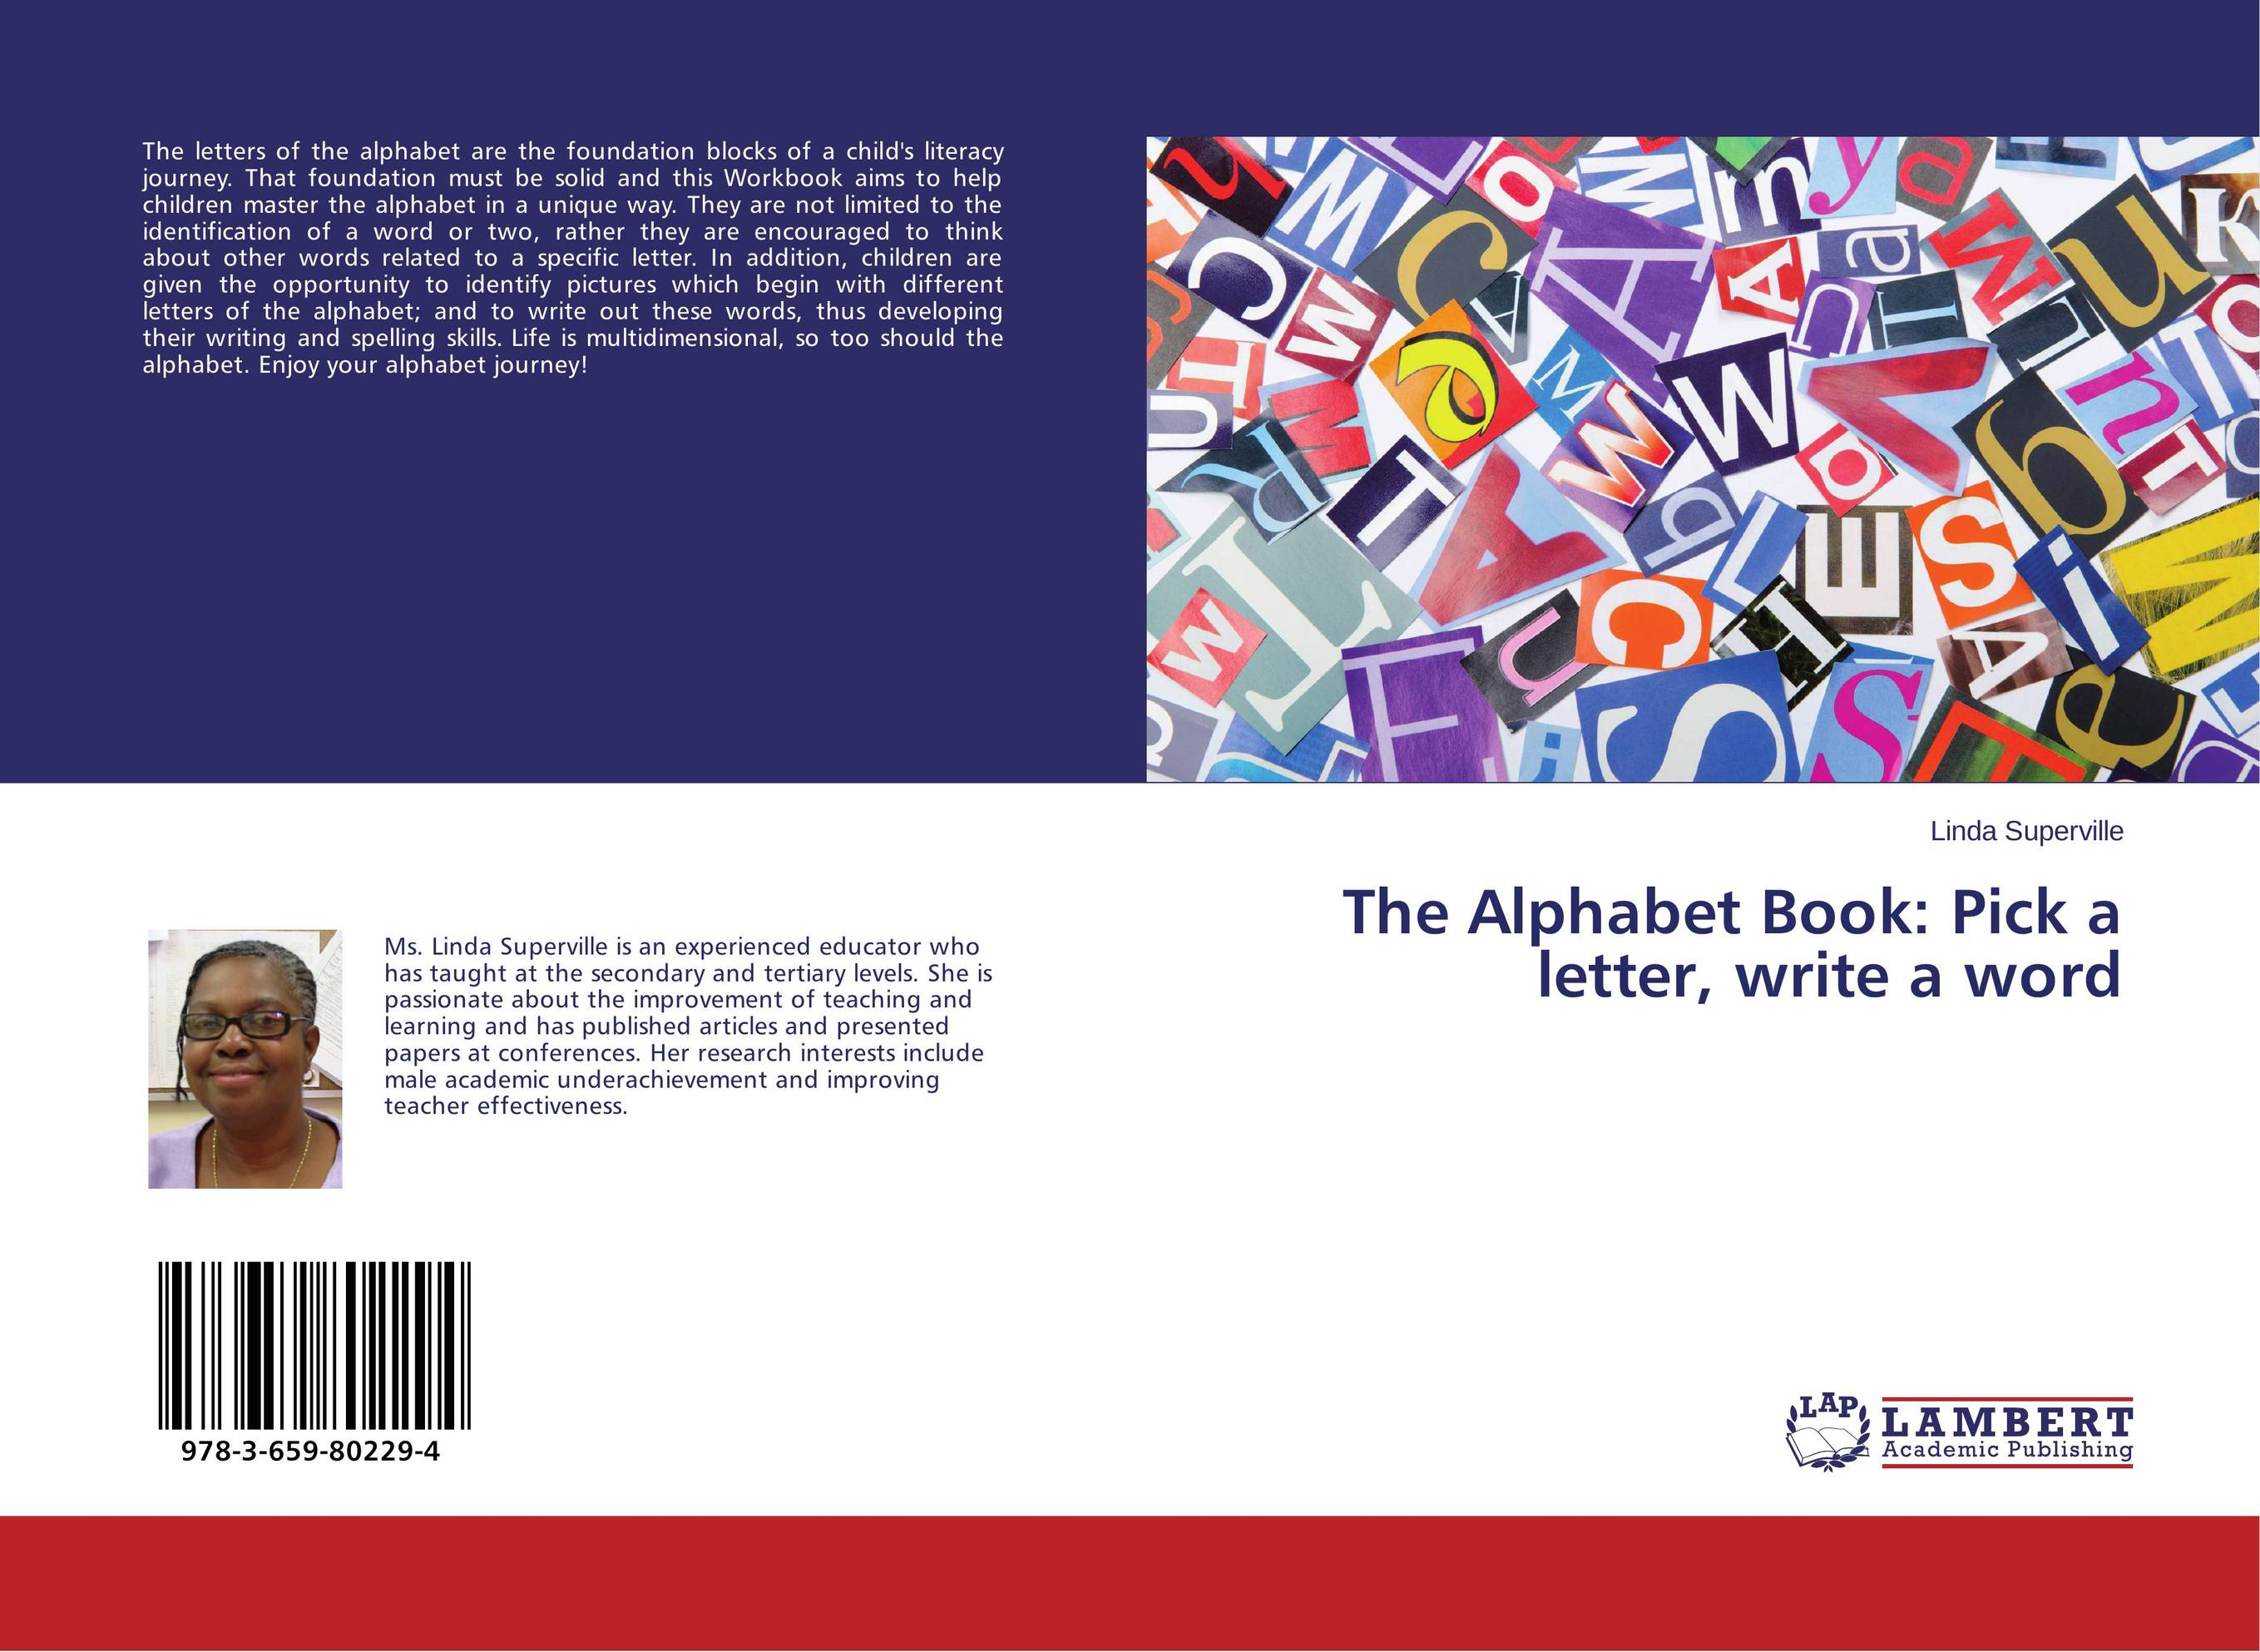 The Alphabet Book: Pick a letter, write a word